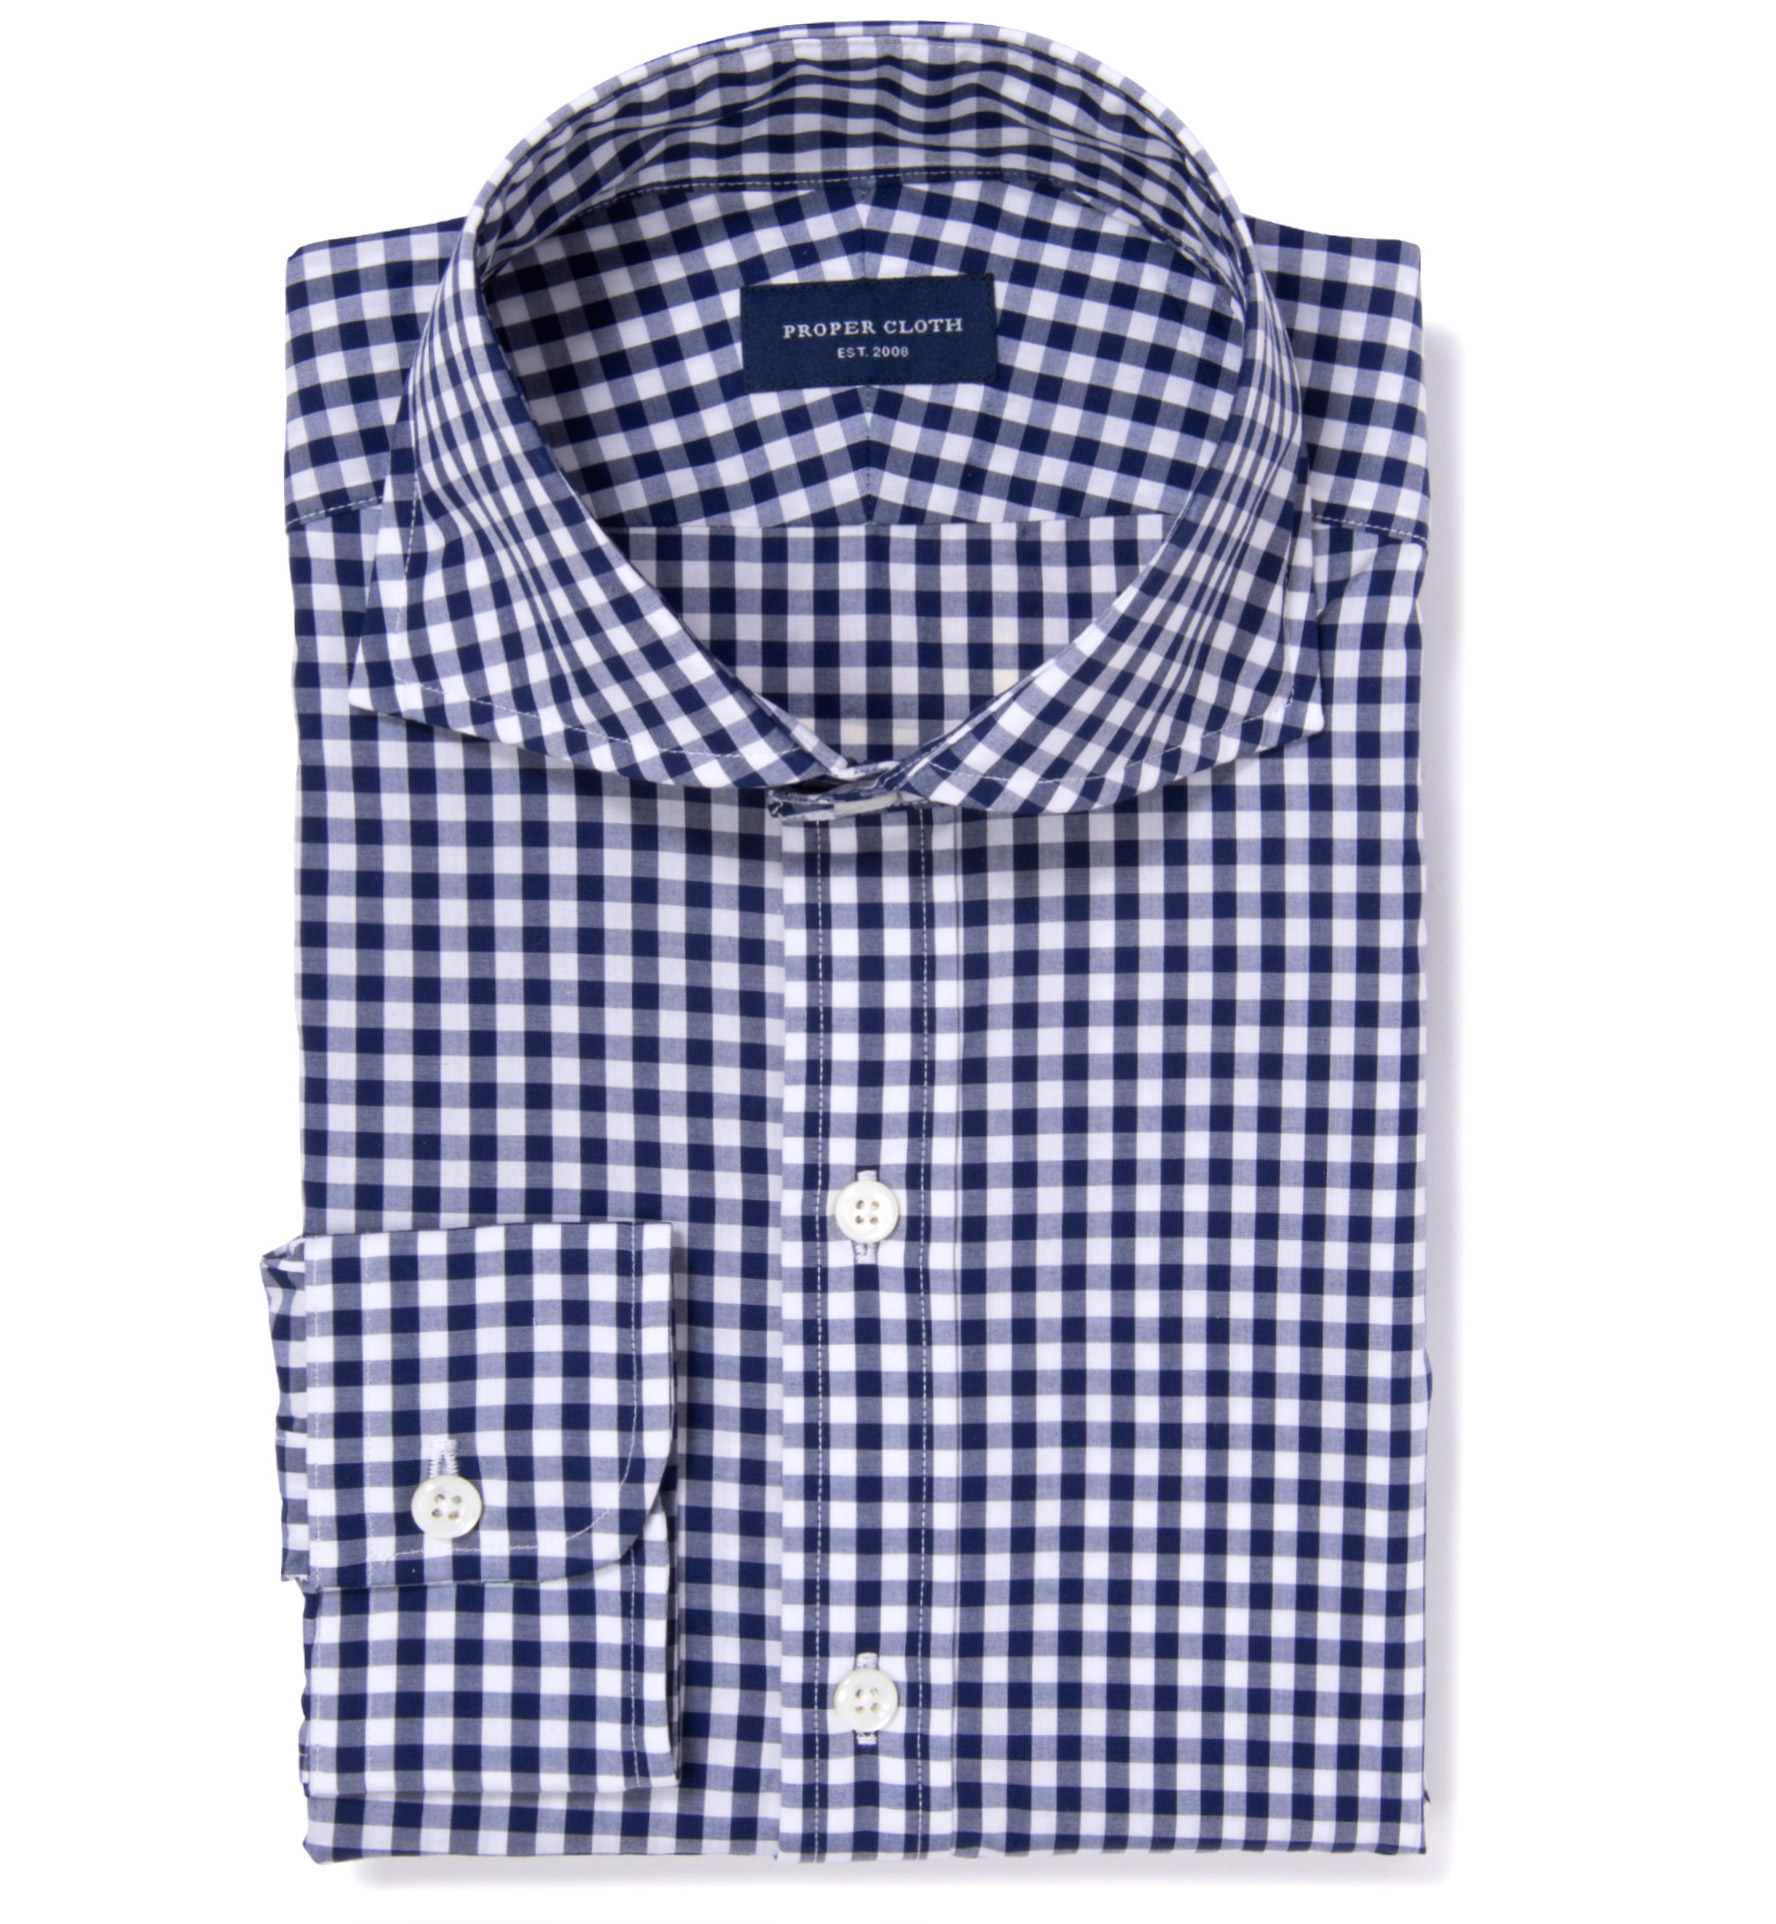 Canclini 120s Navy Gingham Fitted Shirt By Proper Cloth